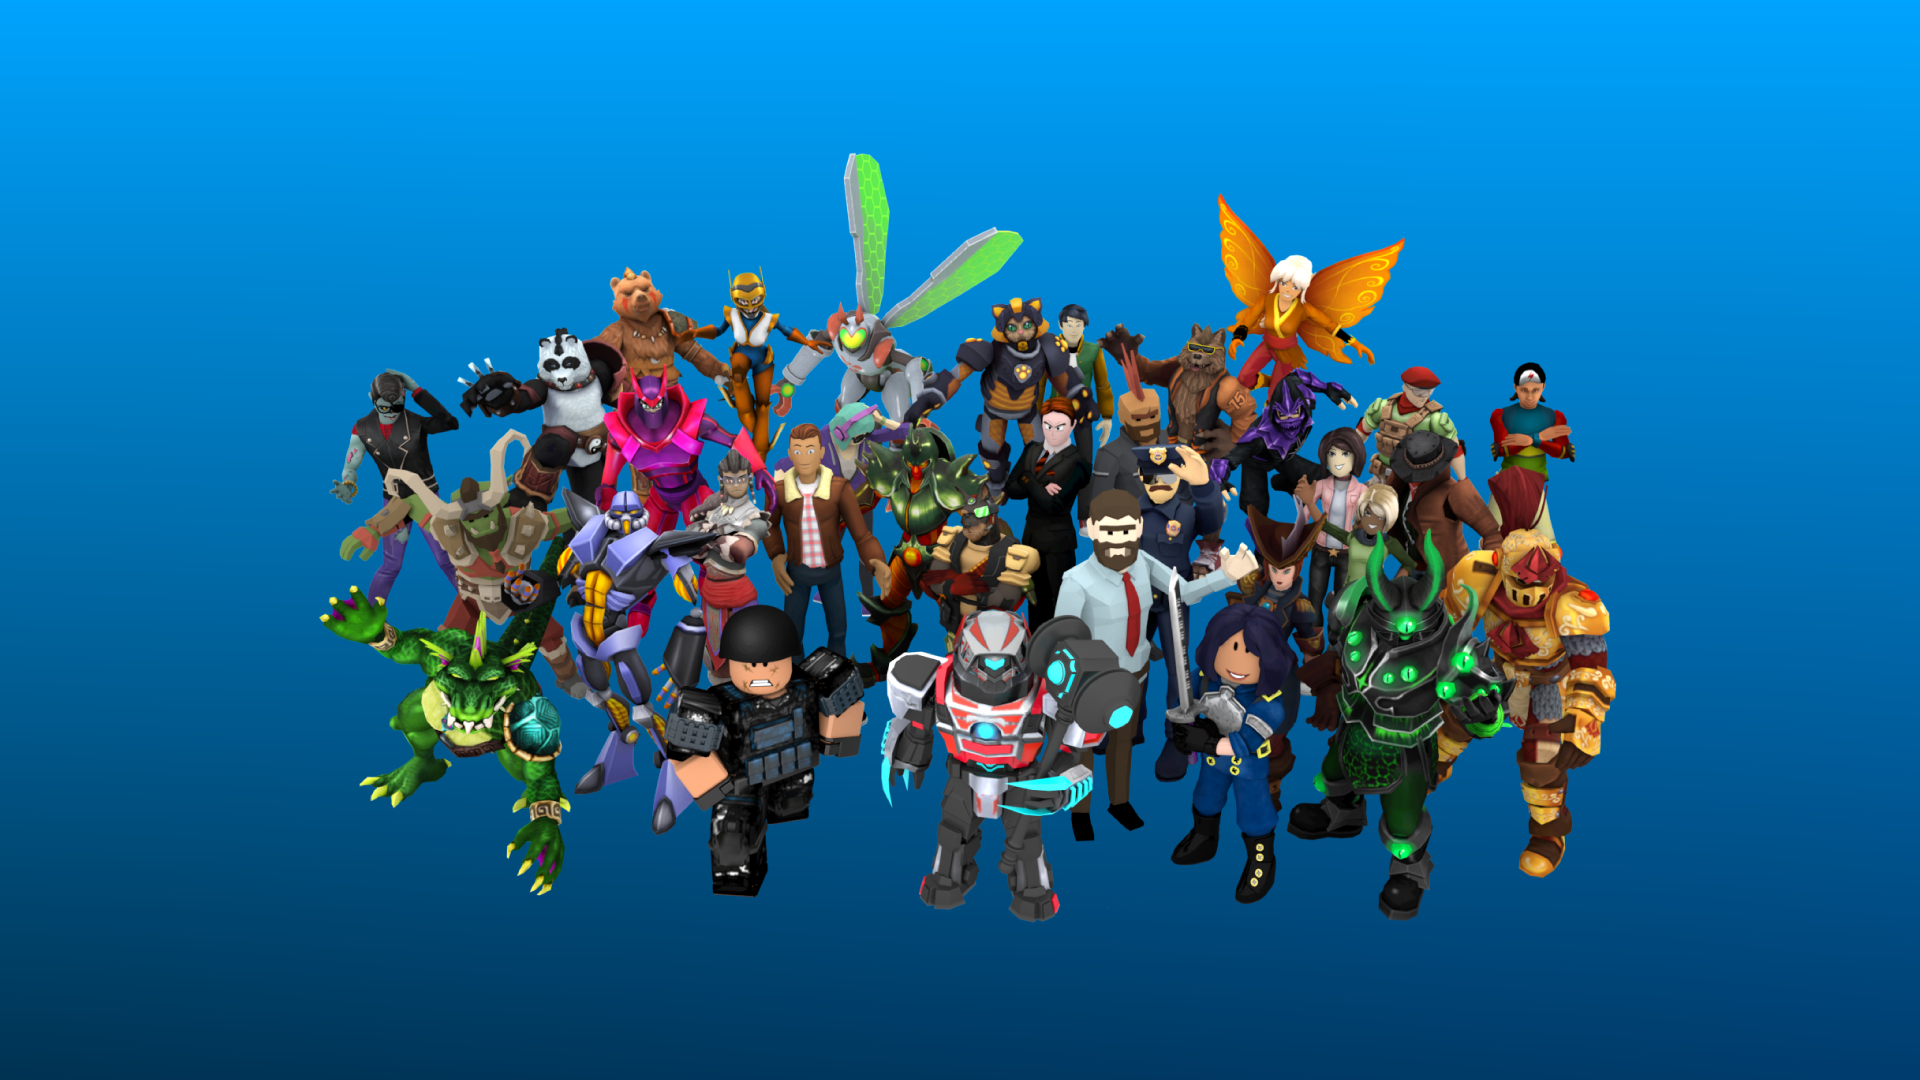 Funny Roblox Wallpapers